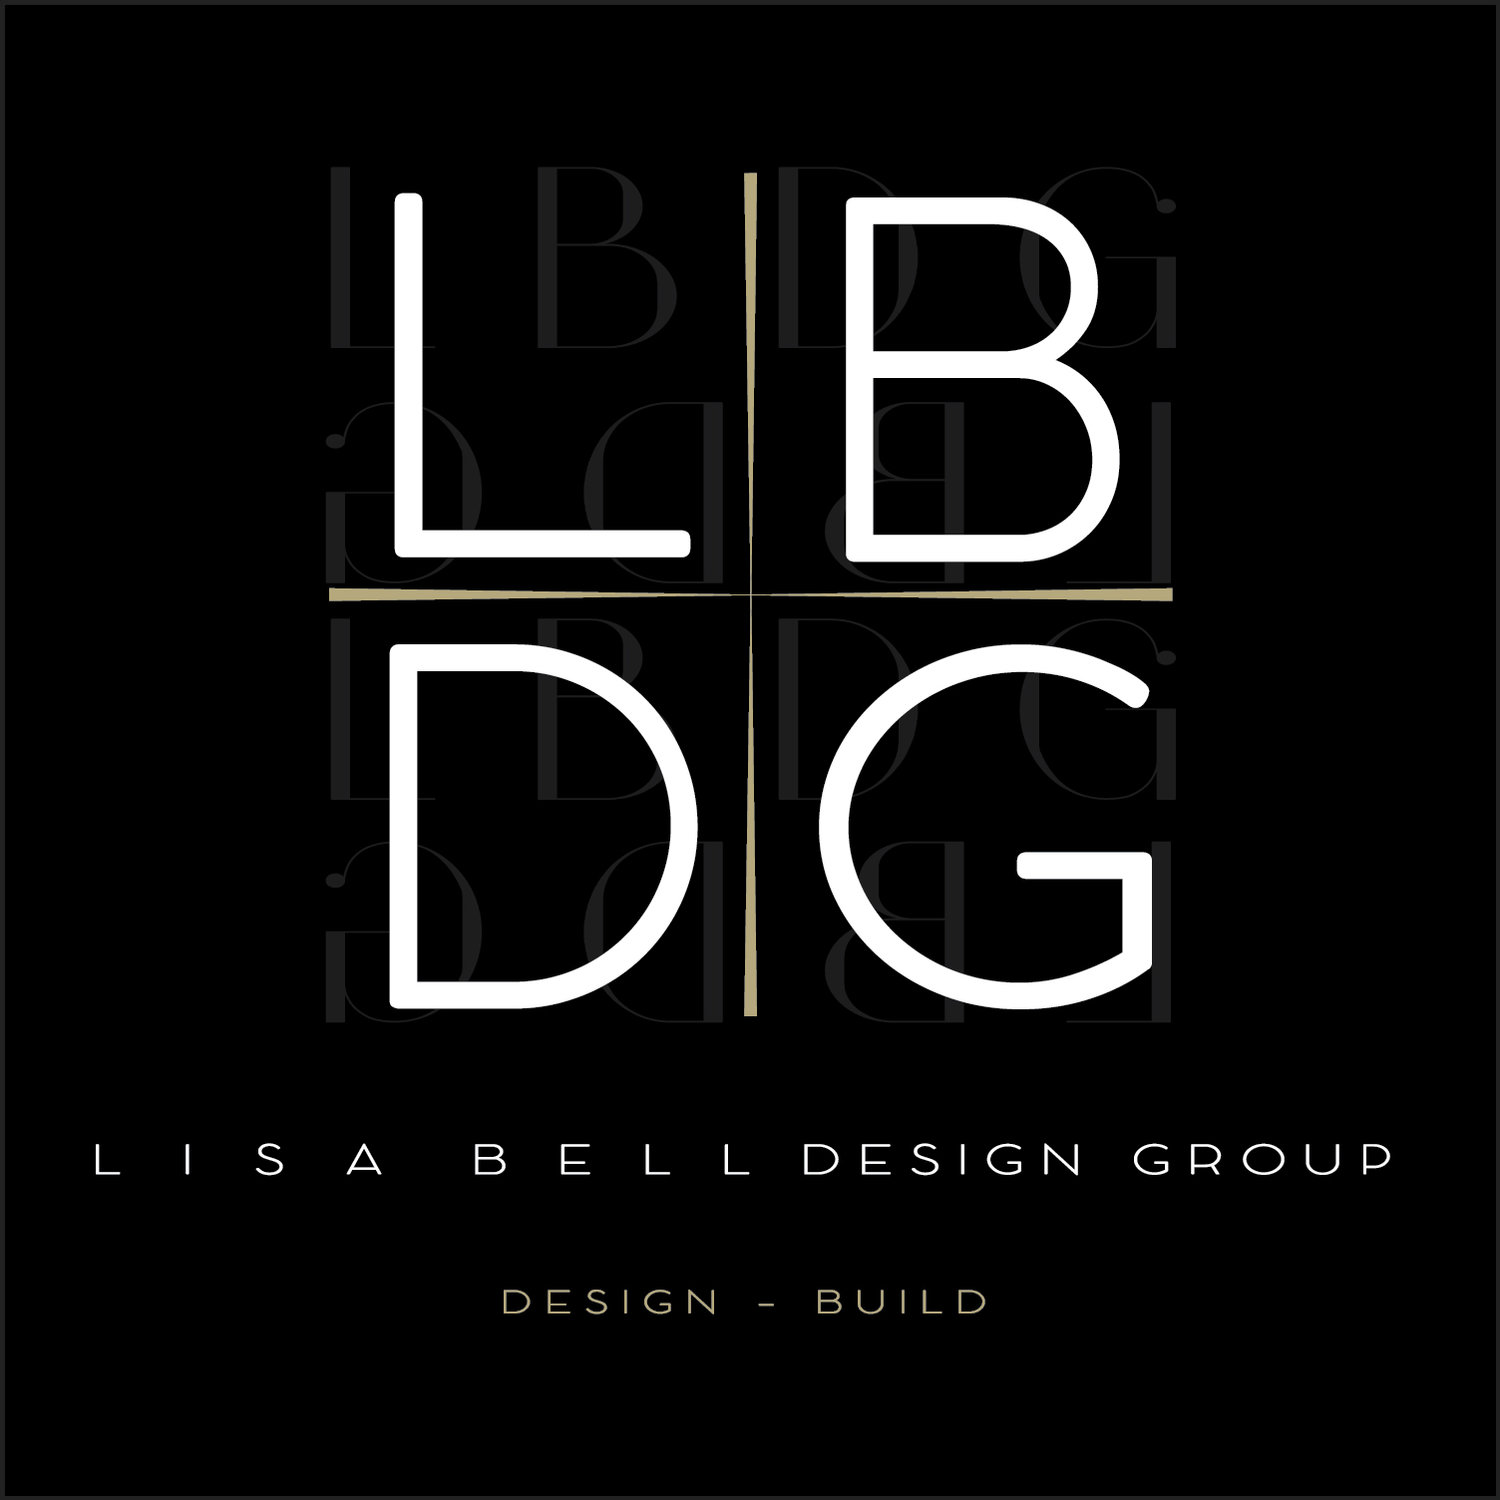 LISA BELL DESIGN GROUP